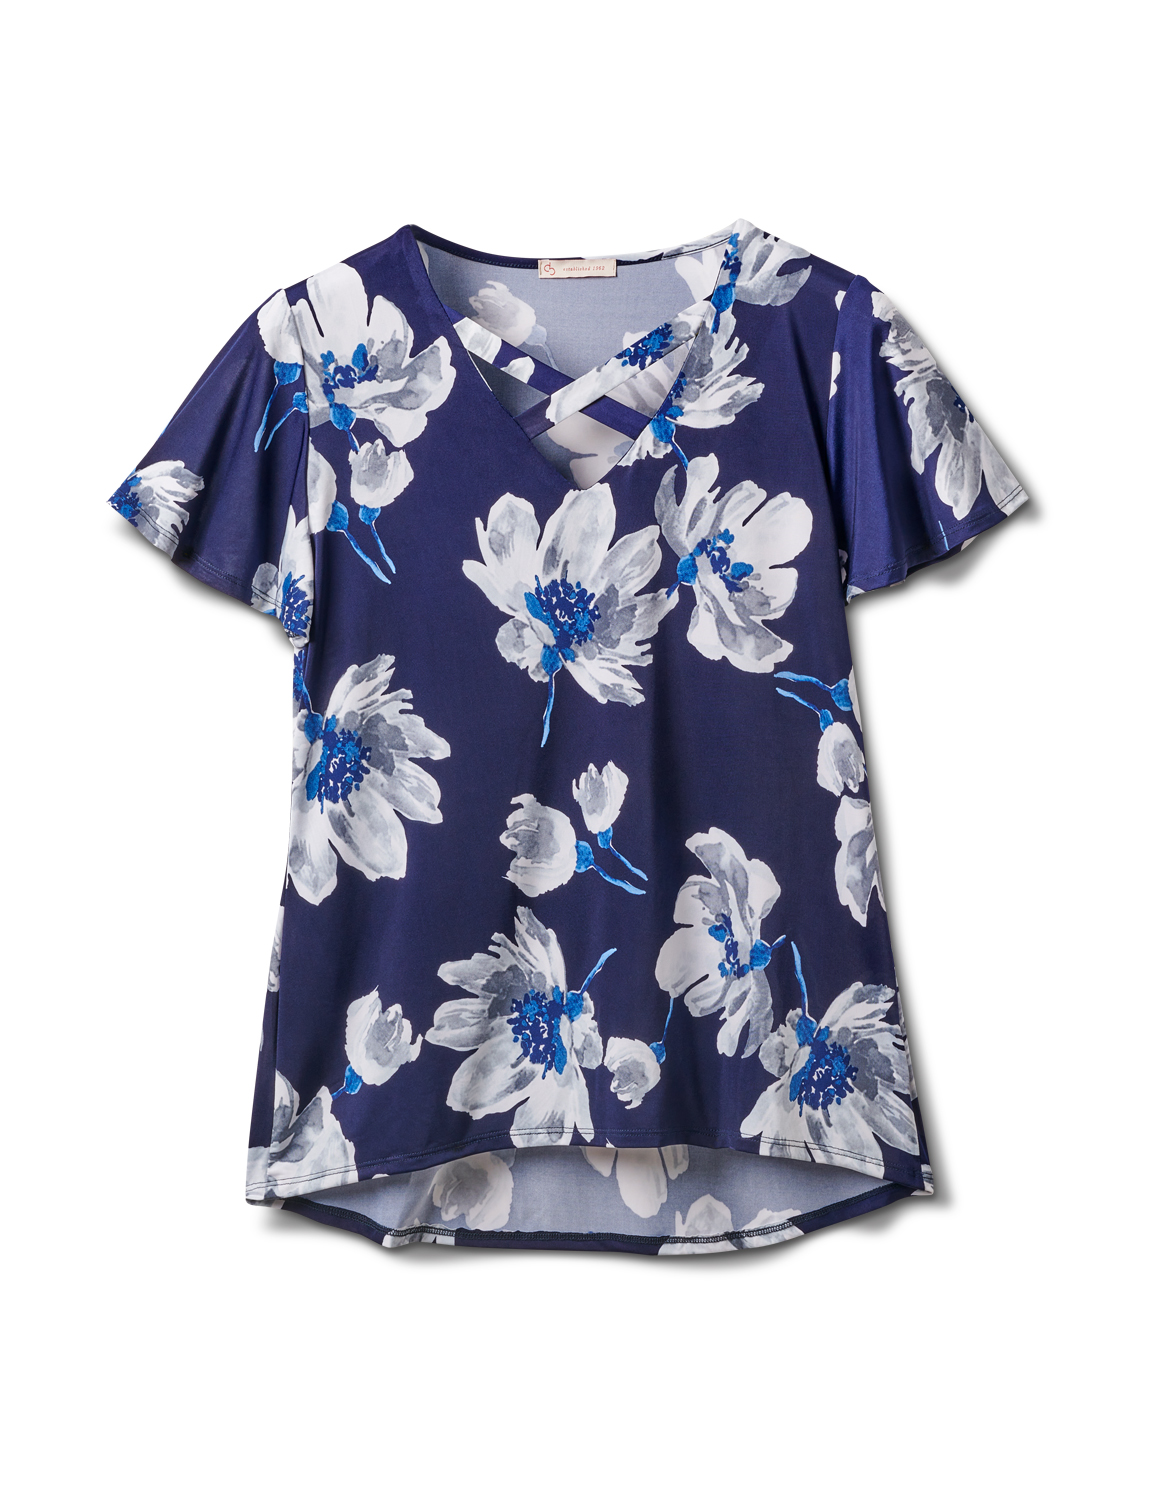 Criss Cross Neck Floral Knit Top -Navy - Front